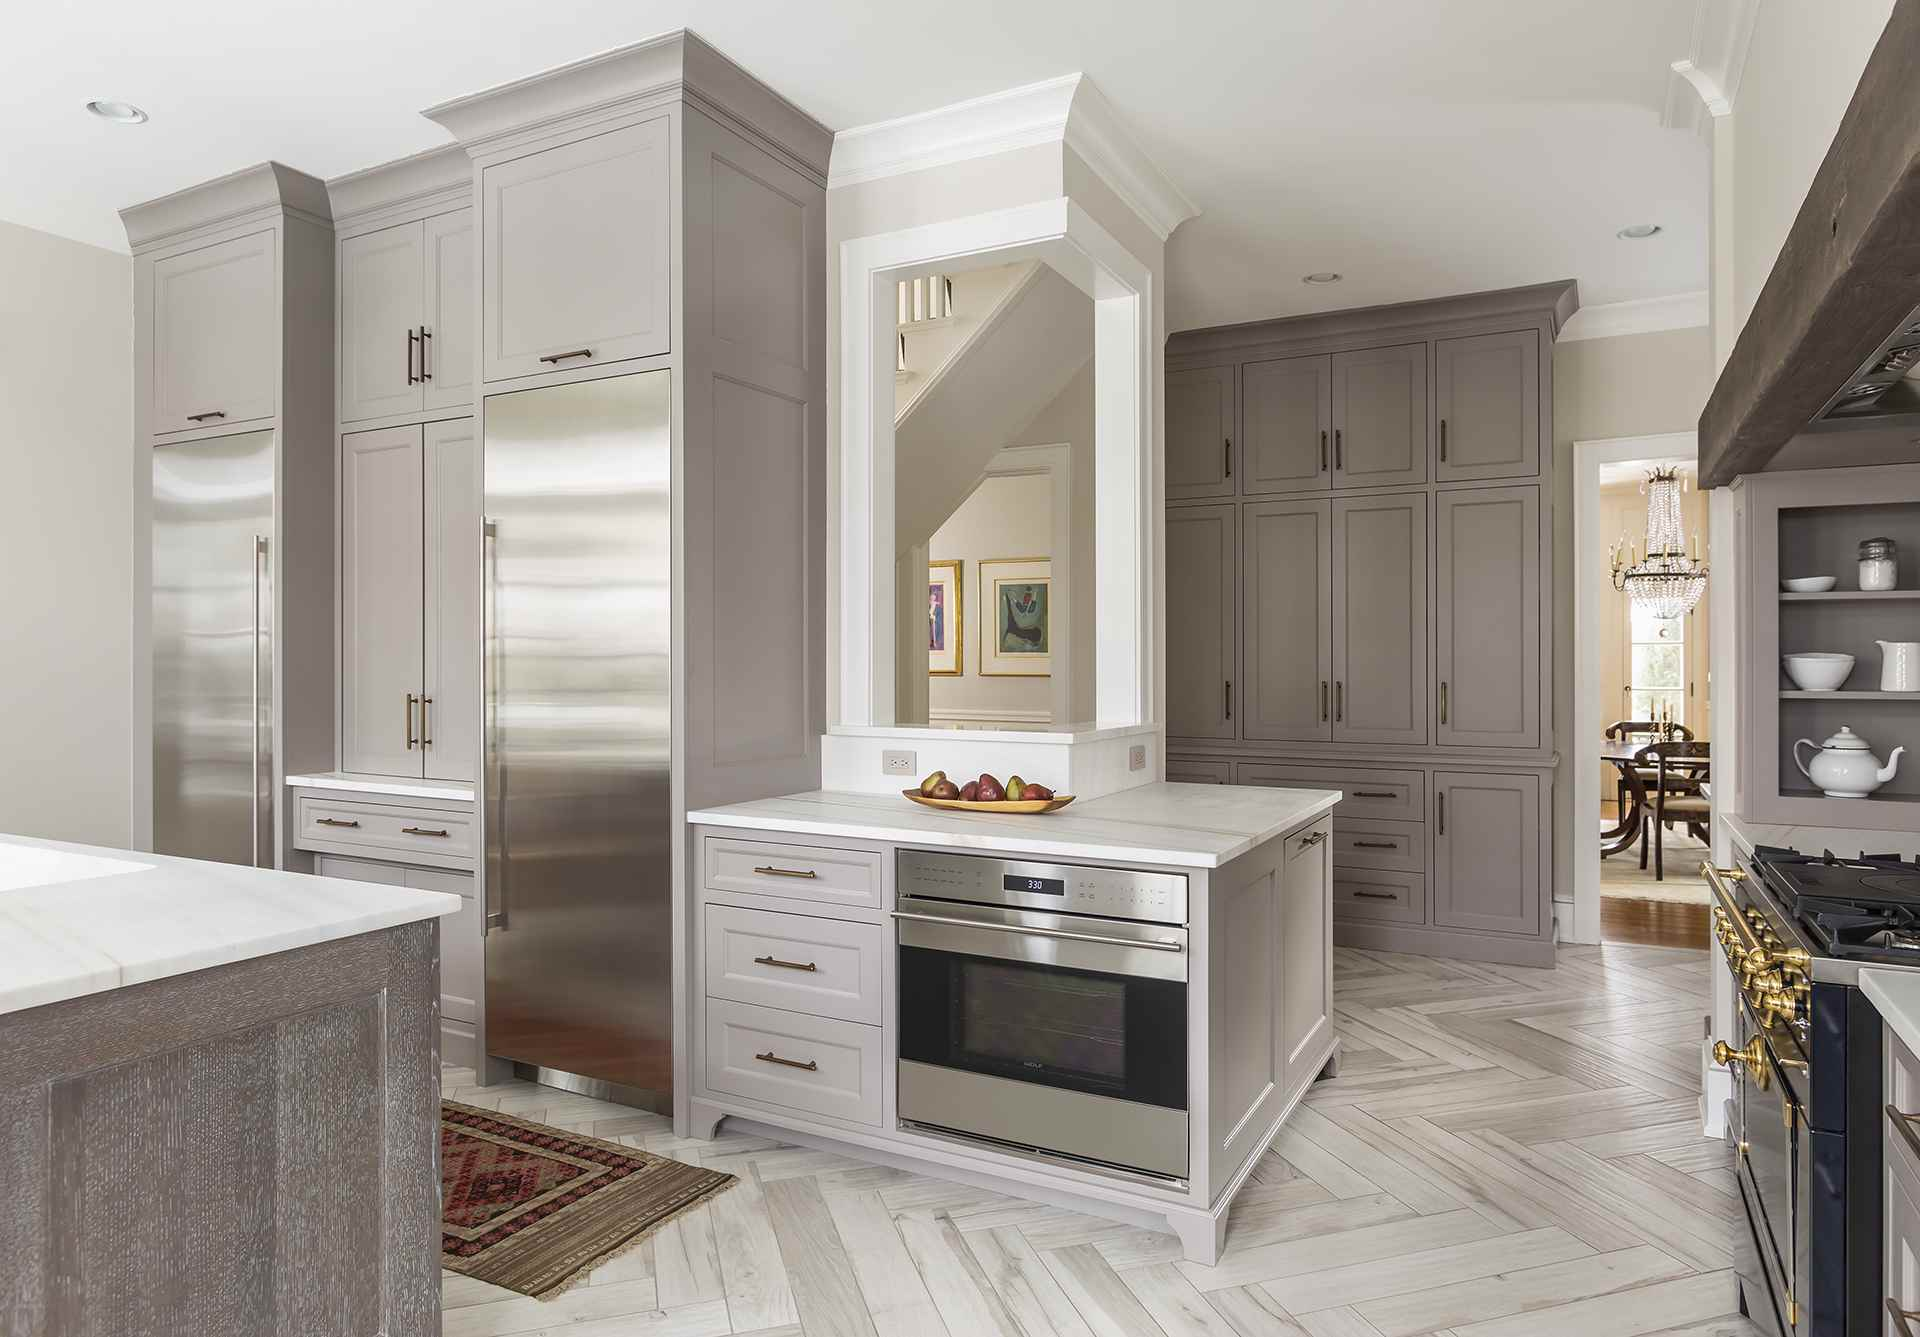 light walls and gray kitchen cabinets in kitchen